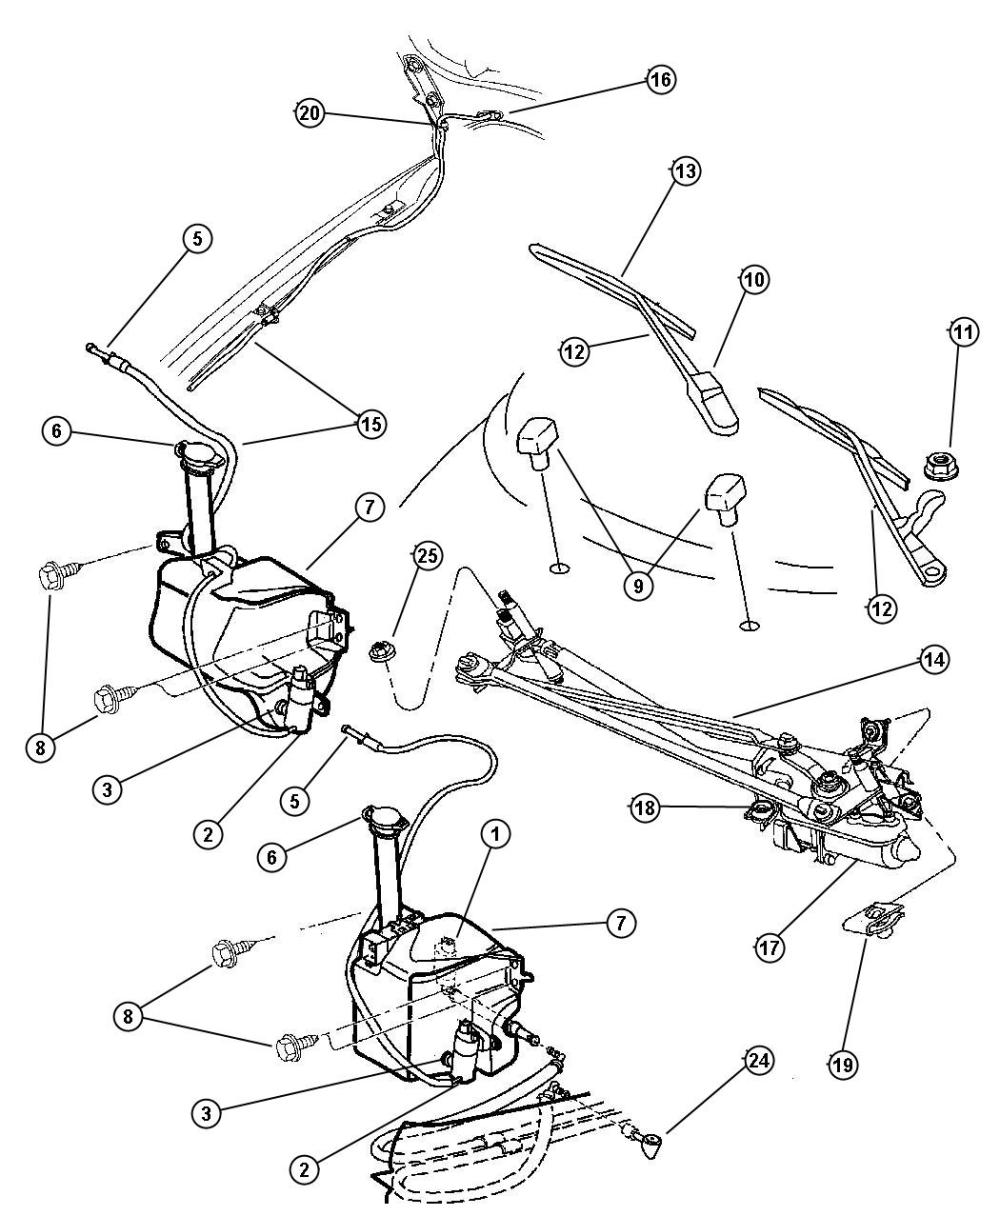 medium resolution of service manual 1997 plymouth breeze windshield washer